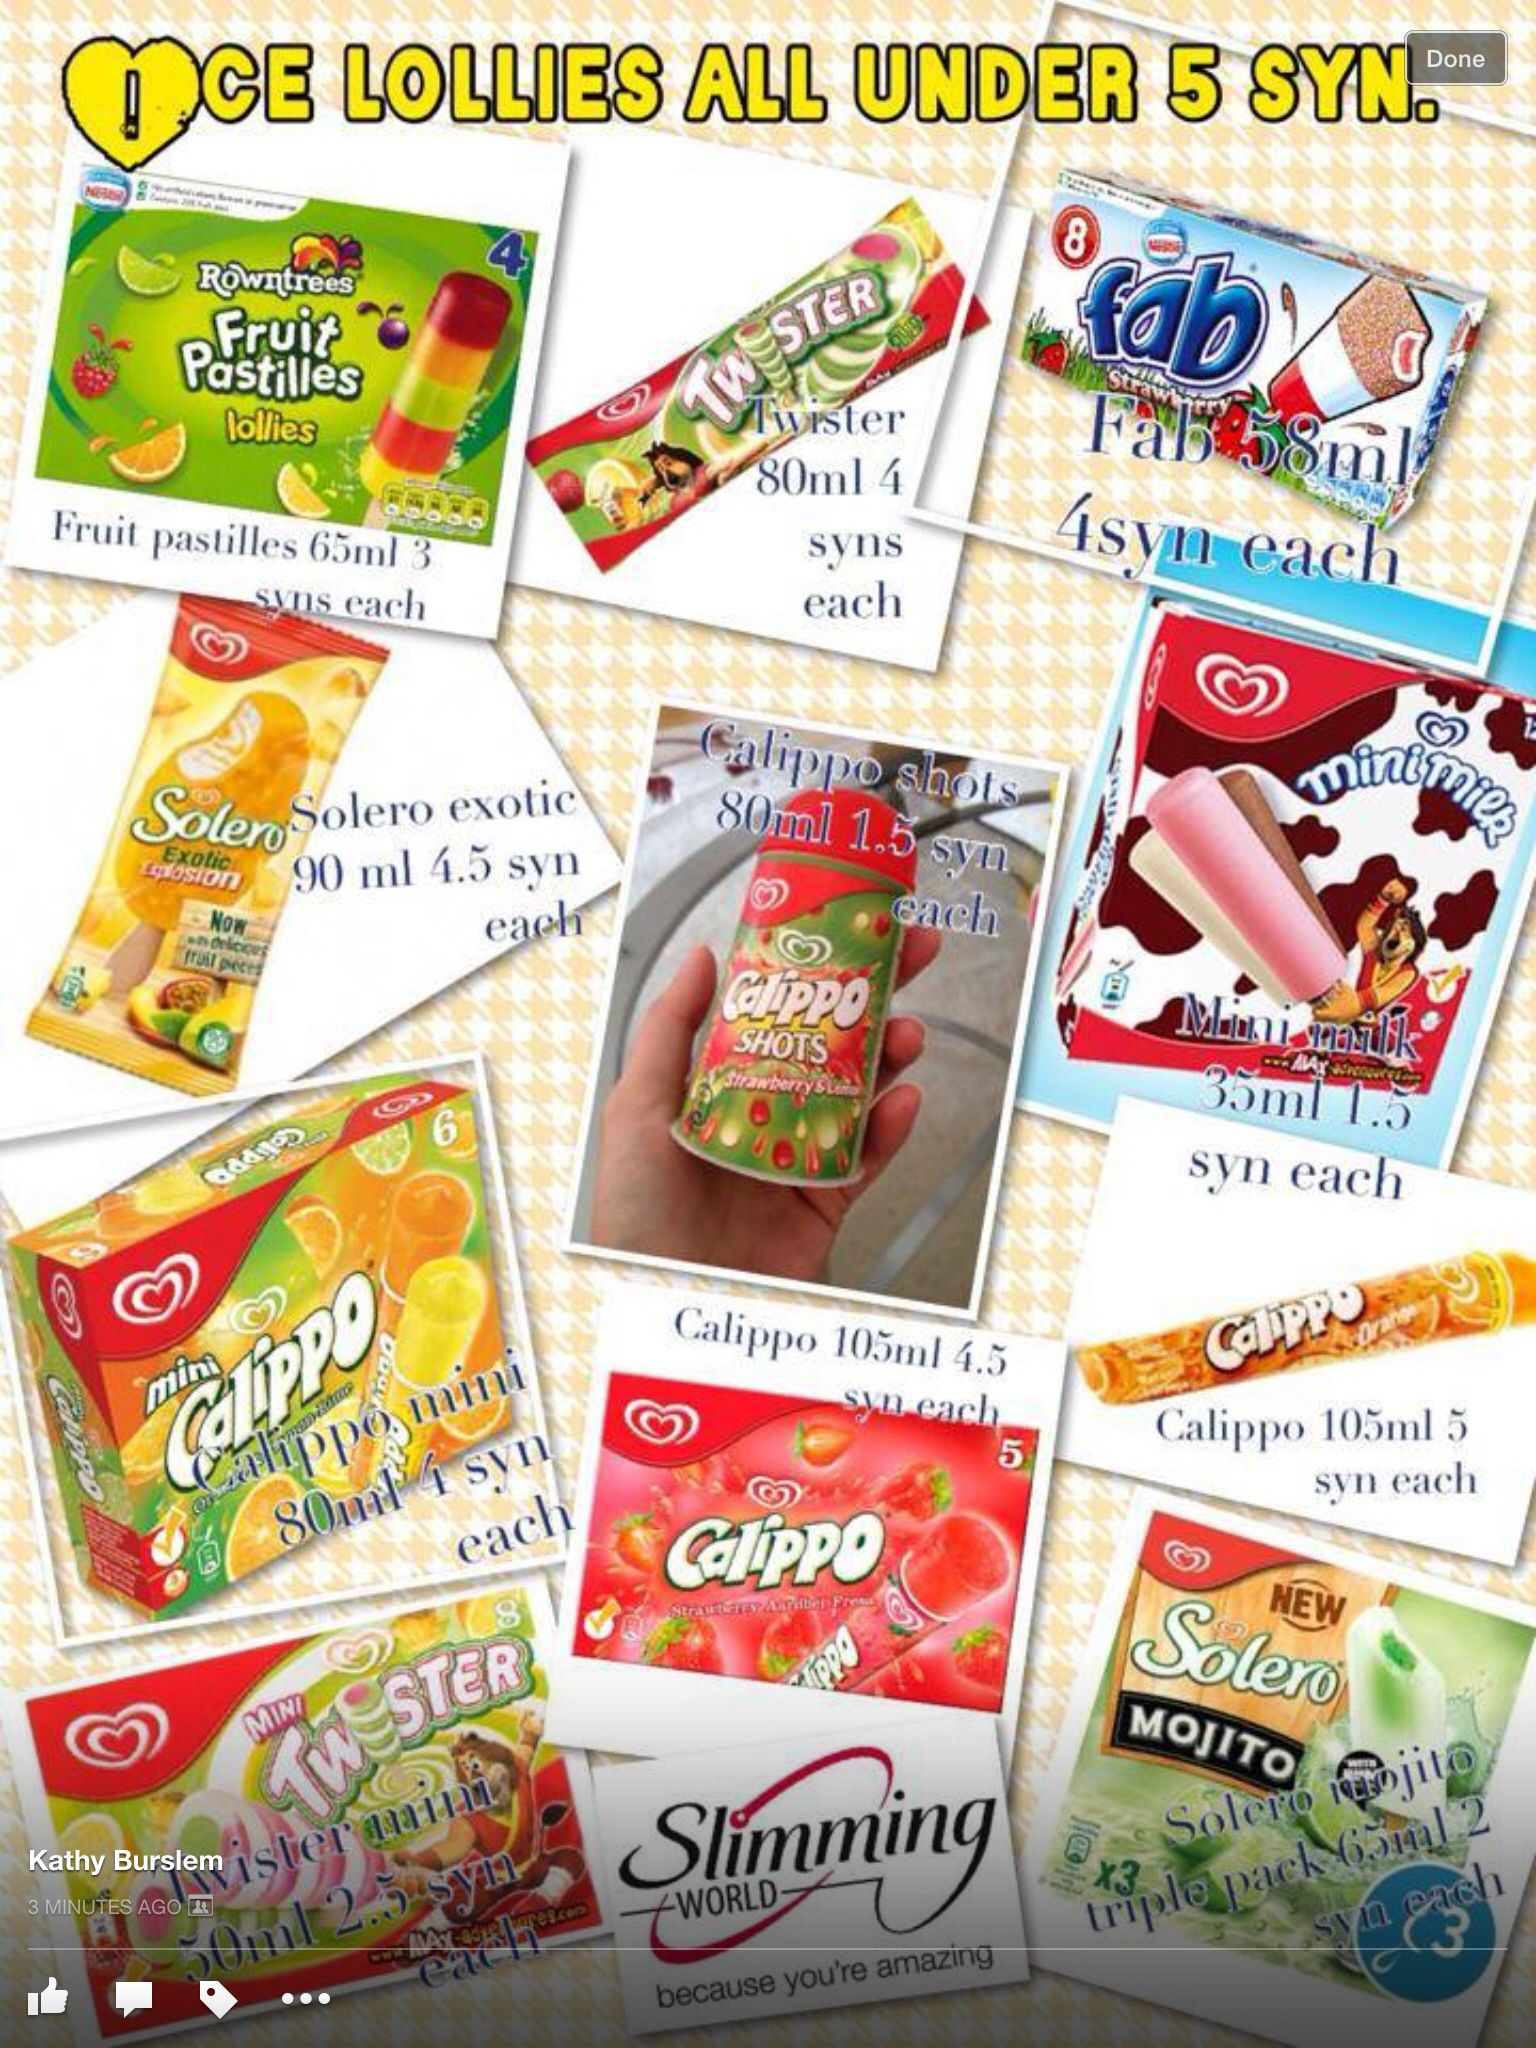 Ice lollies under 5 syns